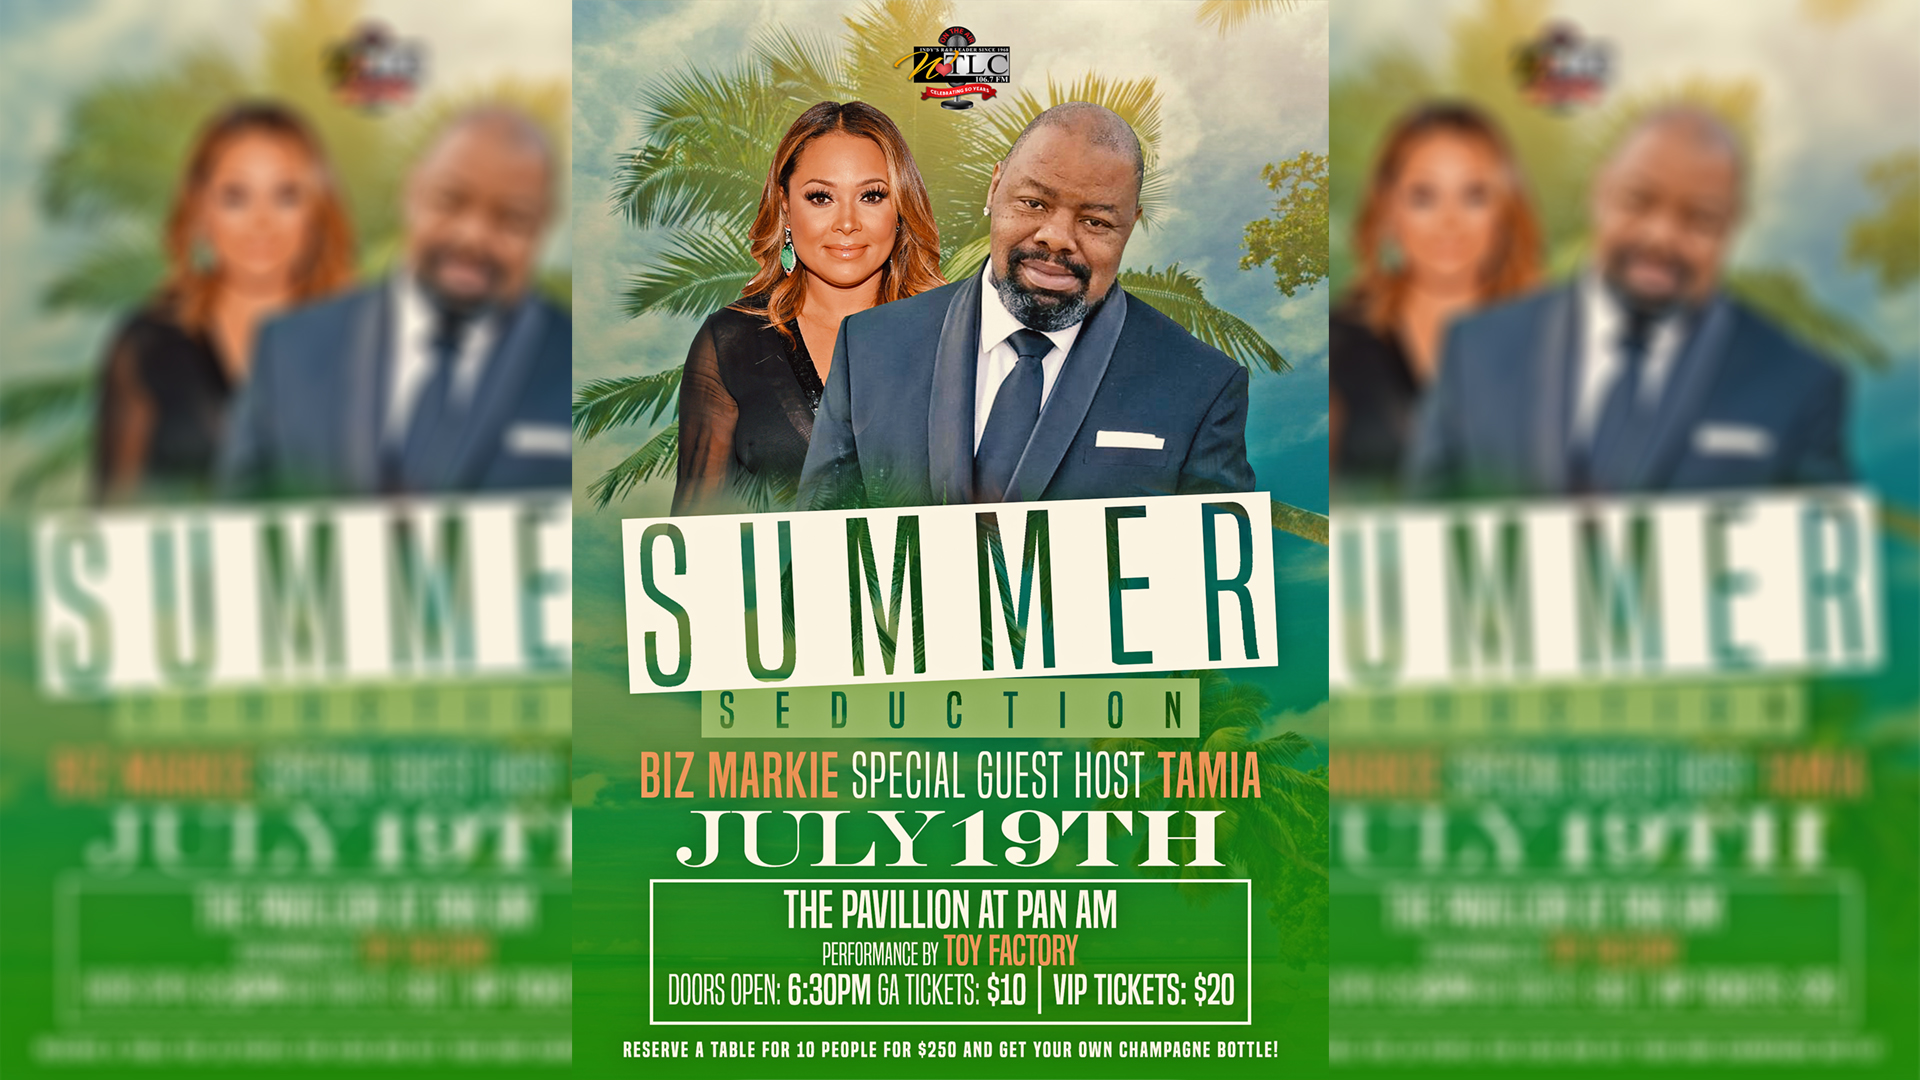 Summer Seduction 2018 Flyer